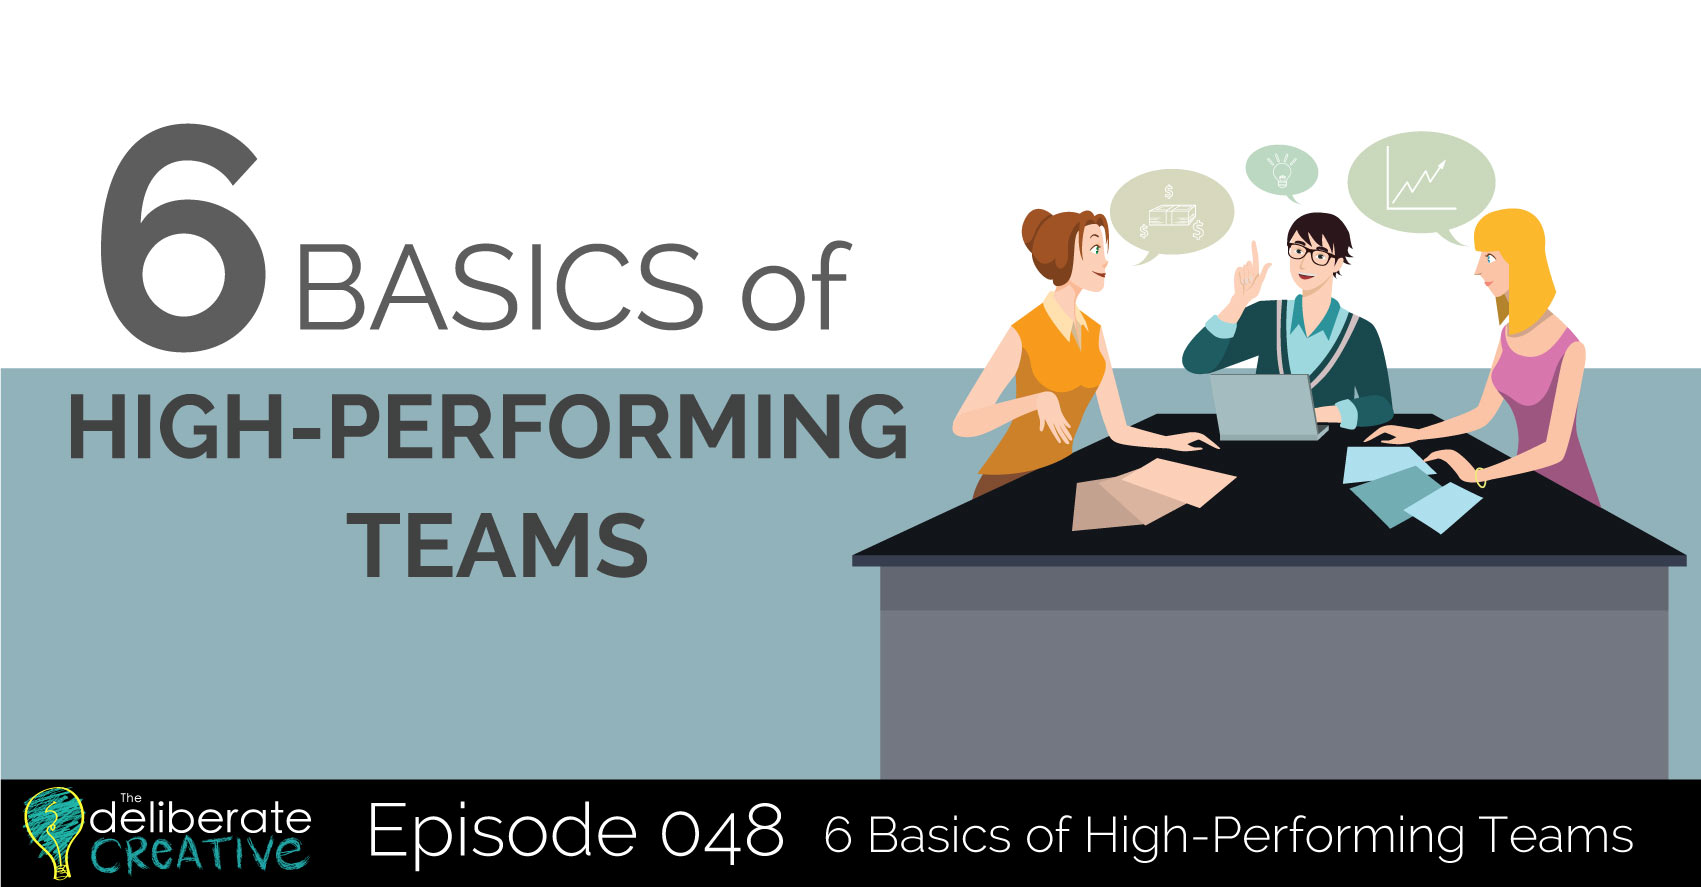 The Deliberate Creative Podcast: 6 Basics of High Performing Teams